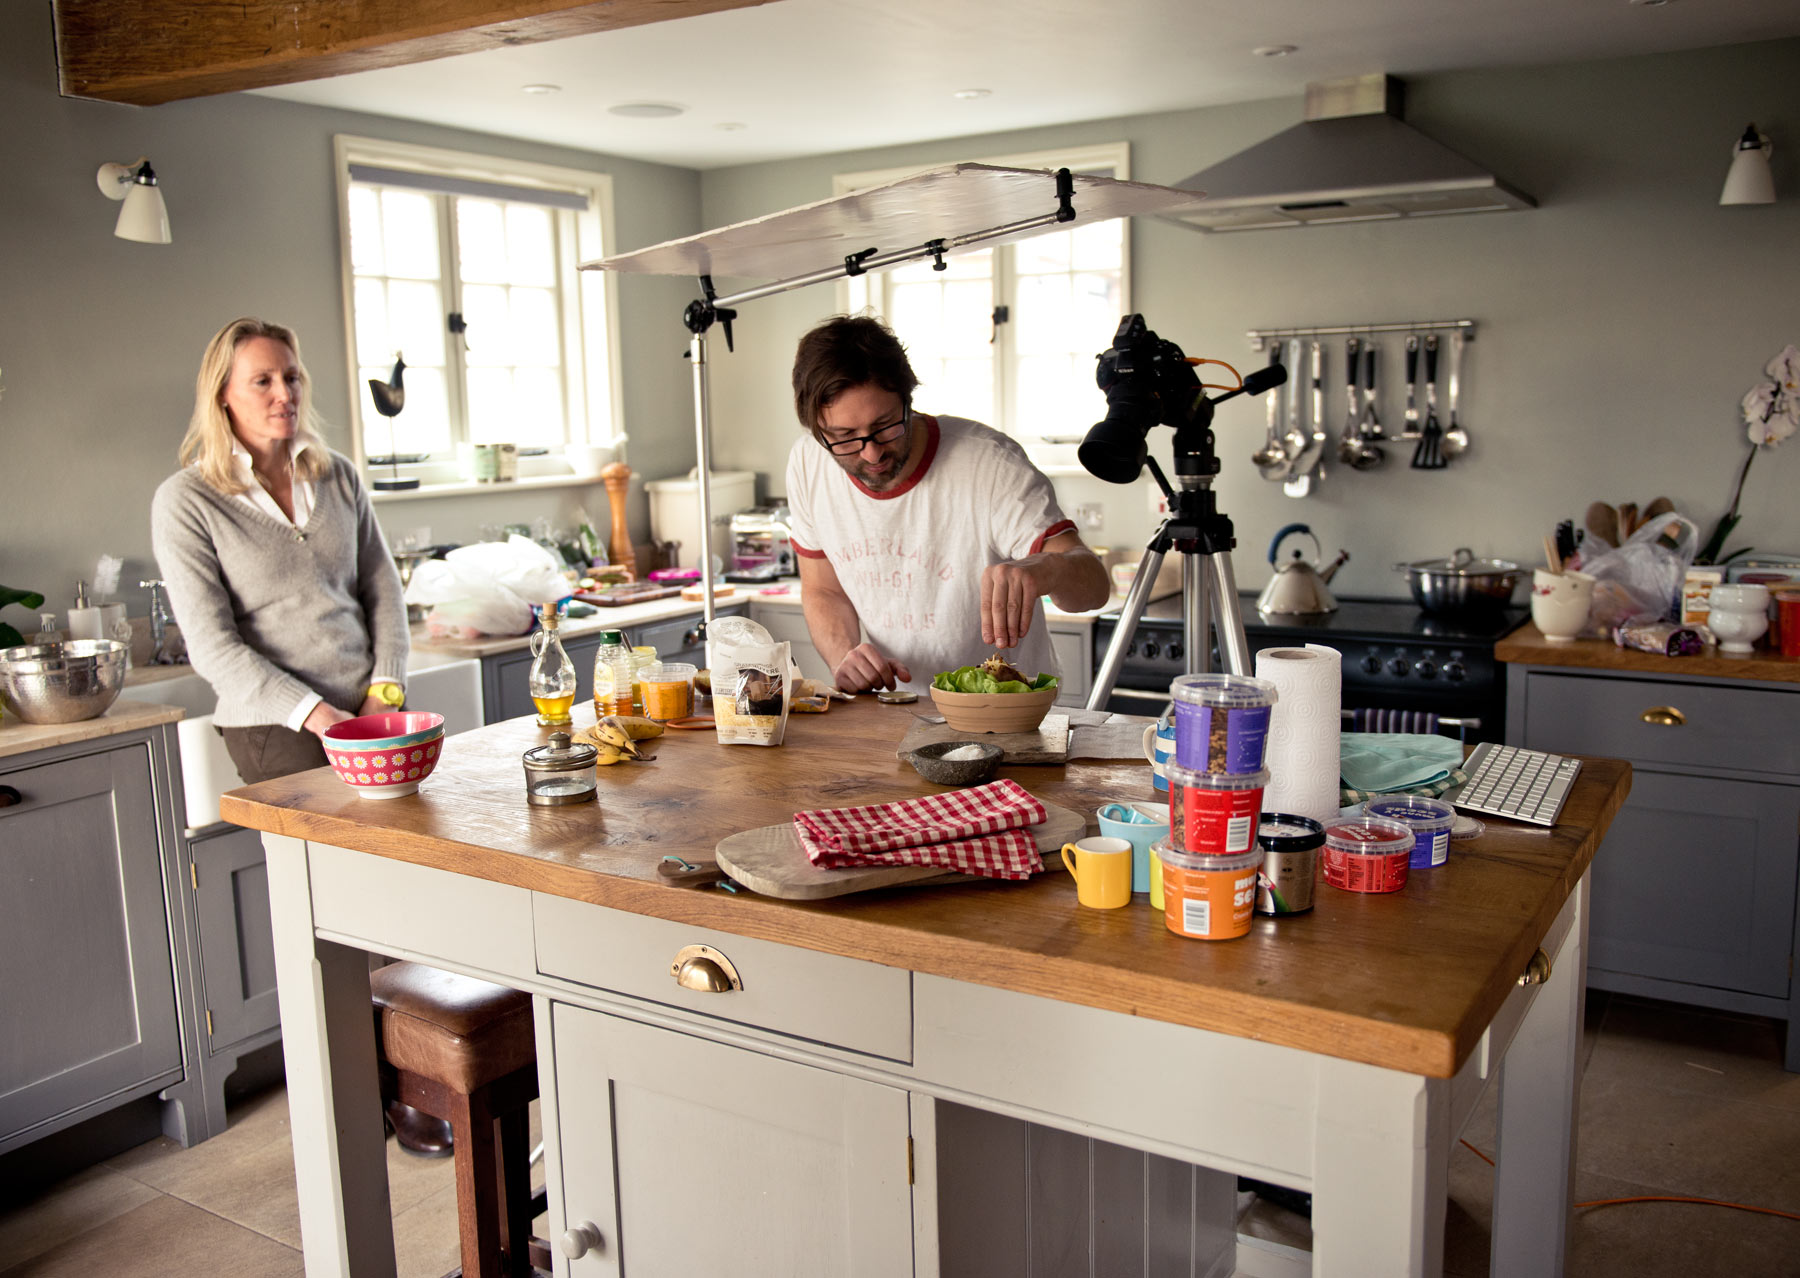 In the kitchen on a photoshoot for Munch Seeds by CliQQ Photography